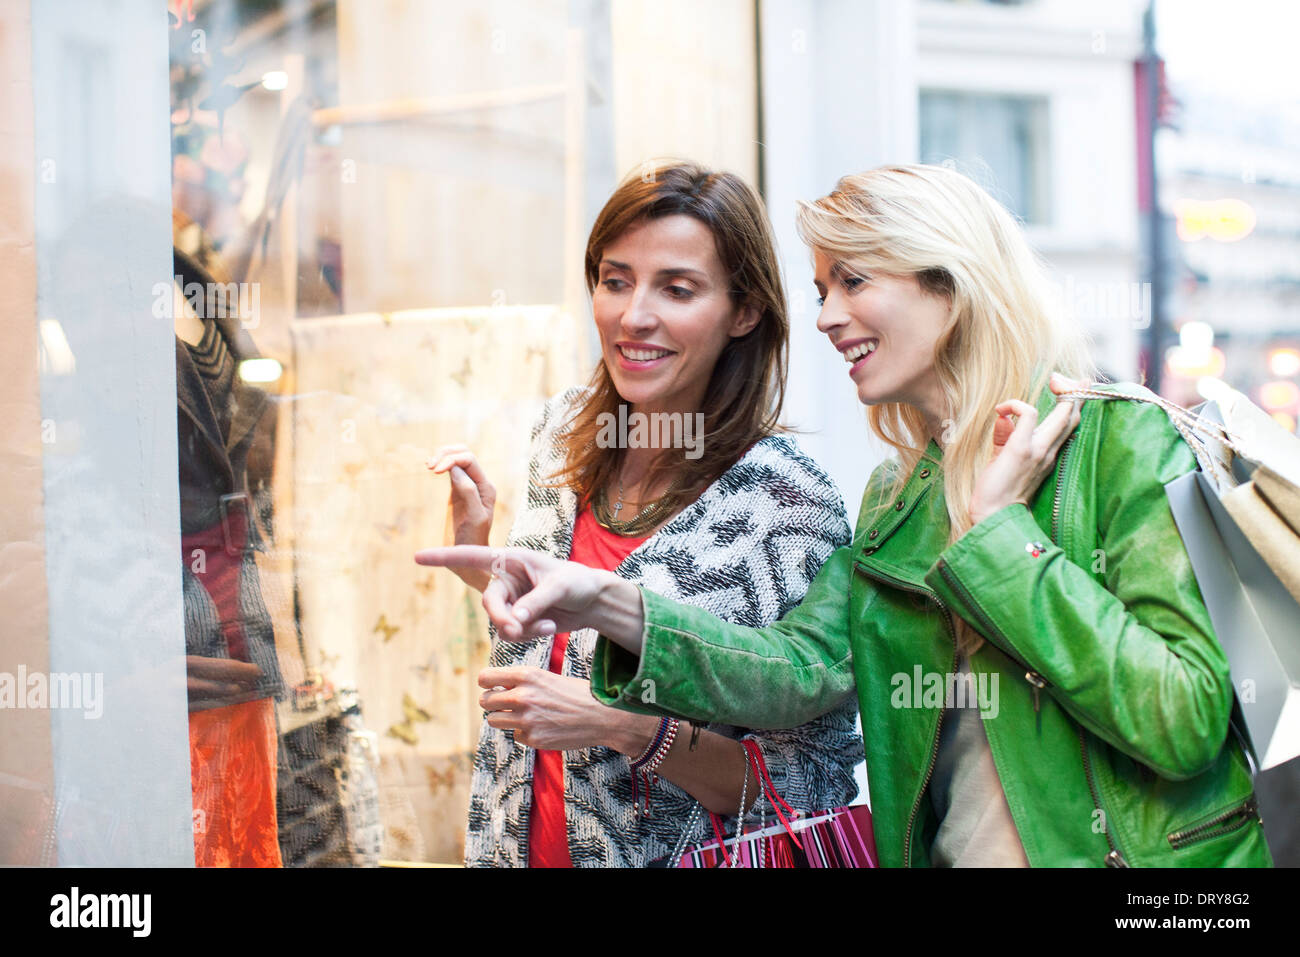 Women window shopping together - Stock Image